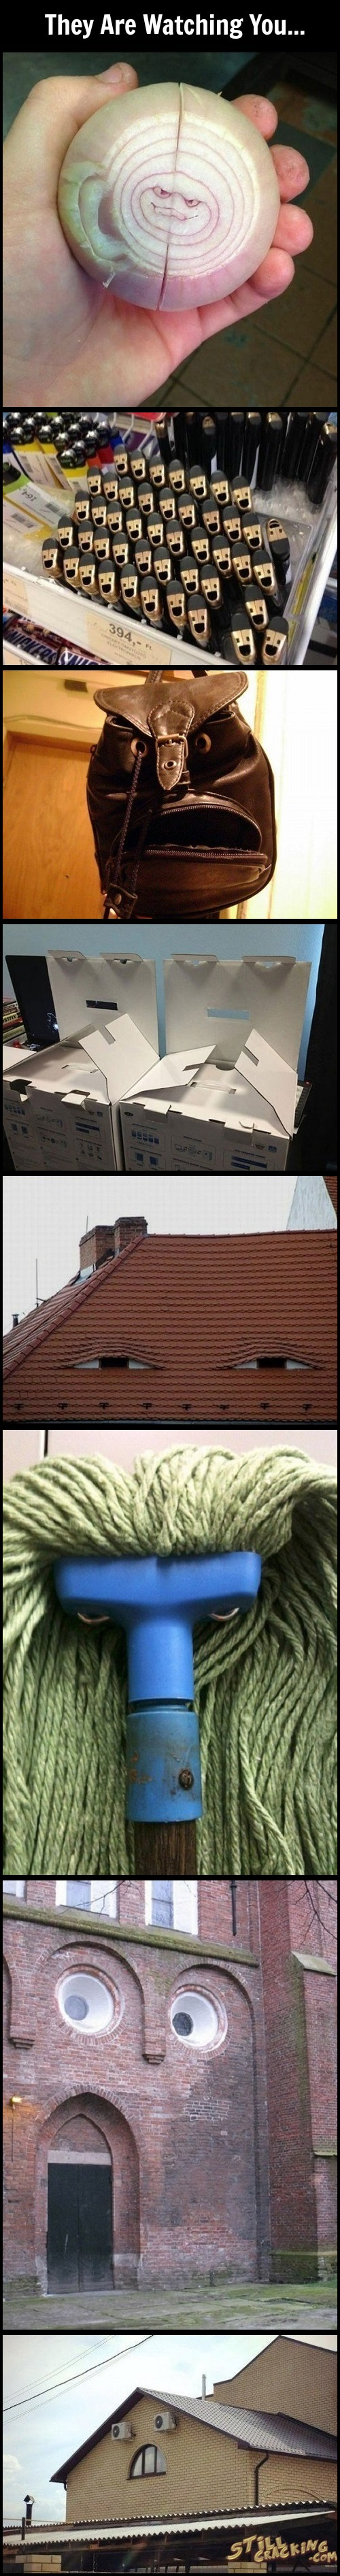 funny pics, funny things, funny buildingsfunny pics, funny things, funny buildings